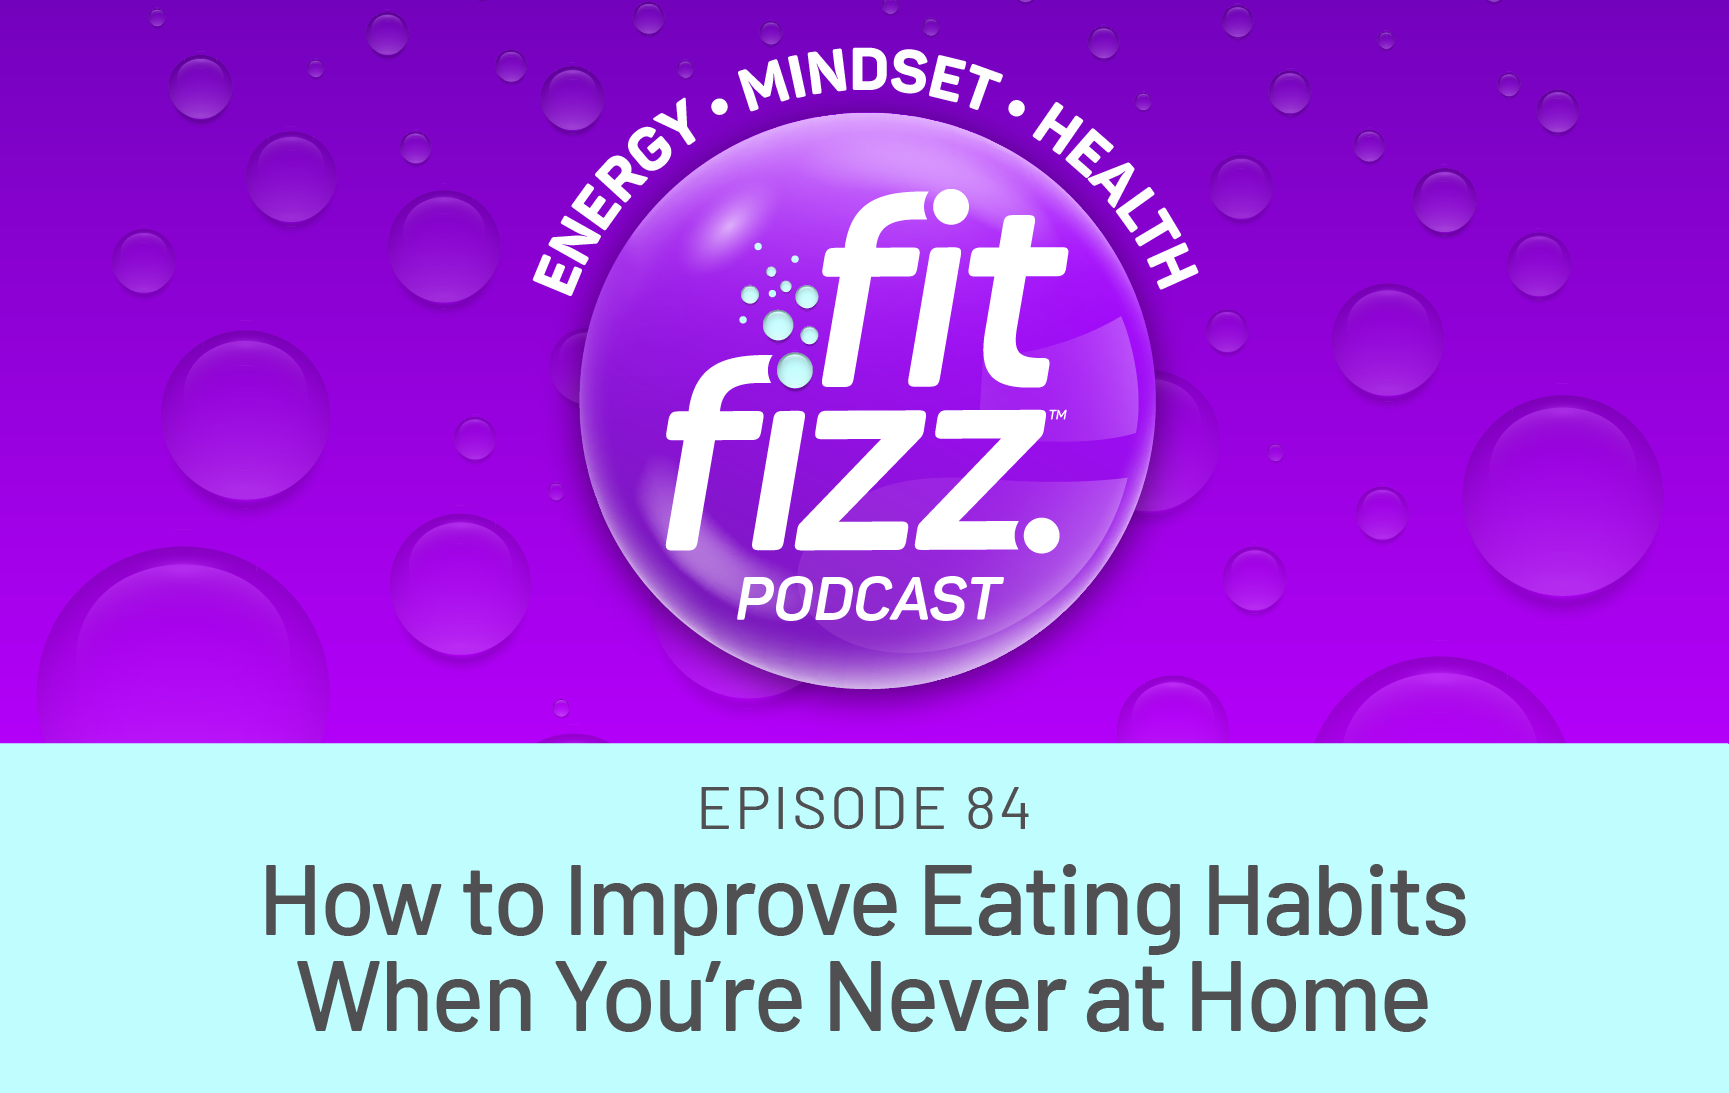 Ep. 84: How to Improve Eating Habits When You're Never at Home